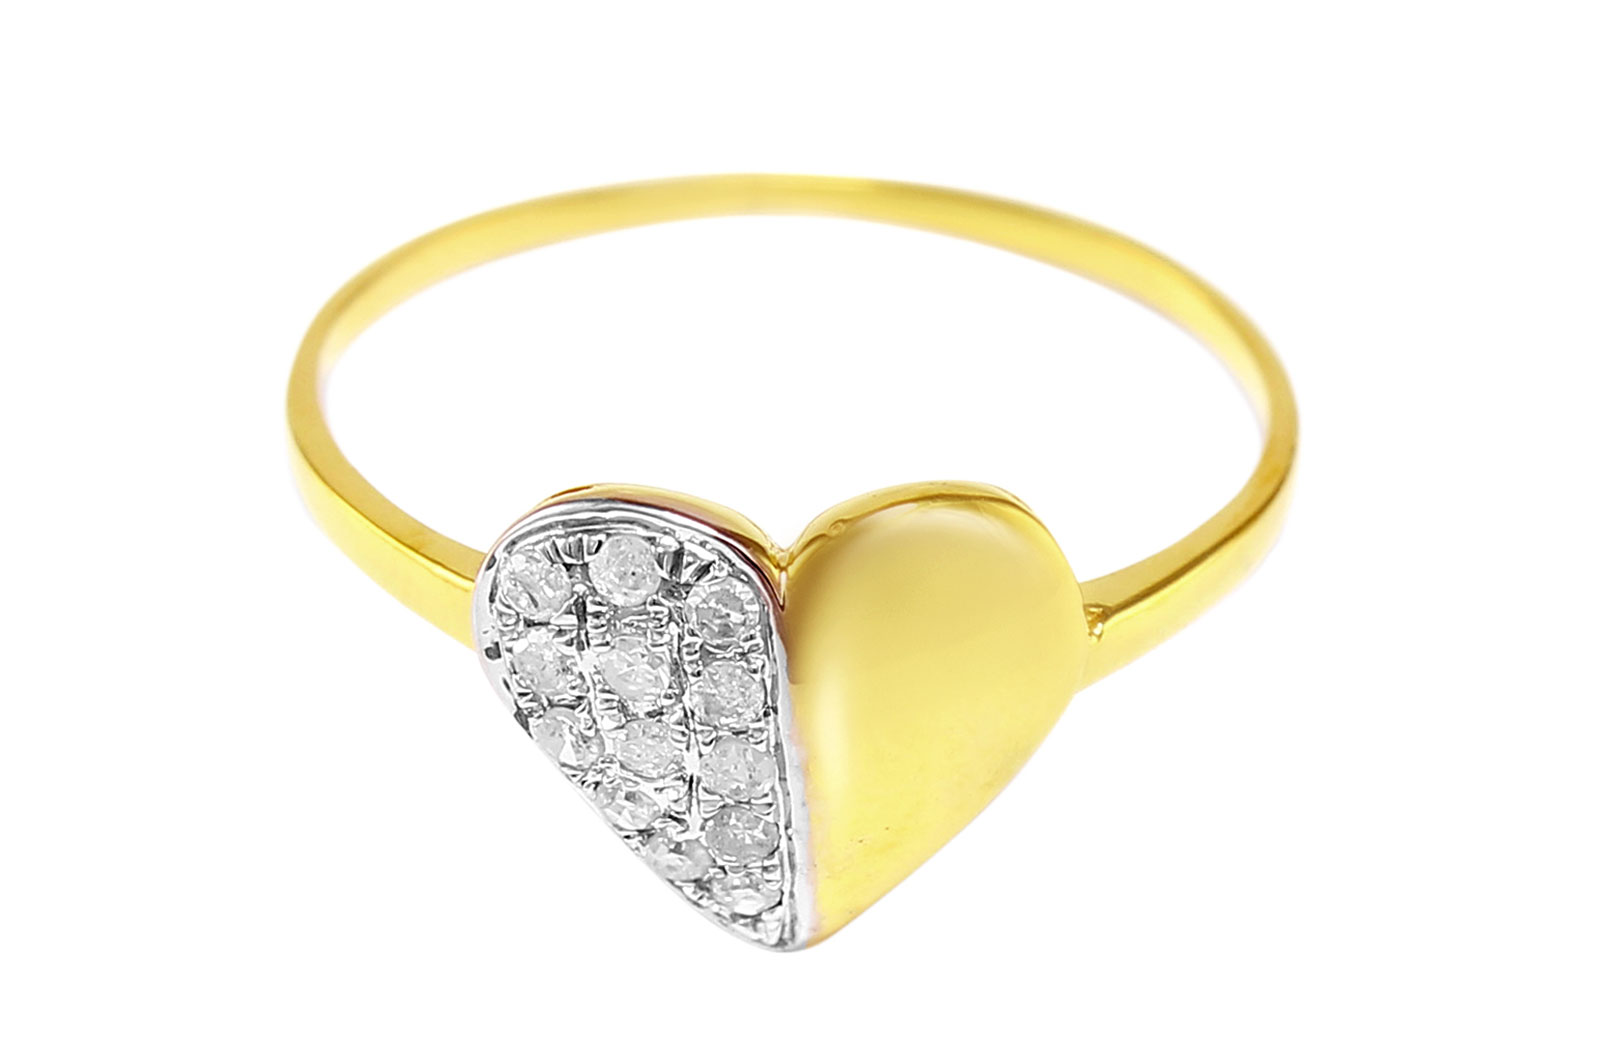 VP Jewels 10K Solid Gold 0.13ct Genuine Diamond Heart Ring - Size US 6.5